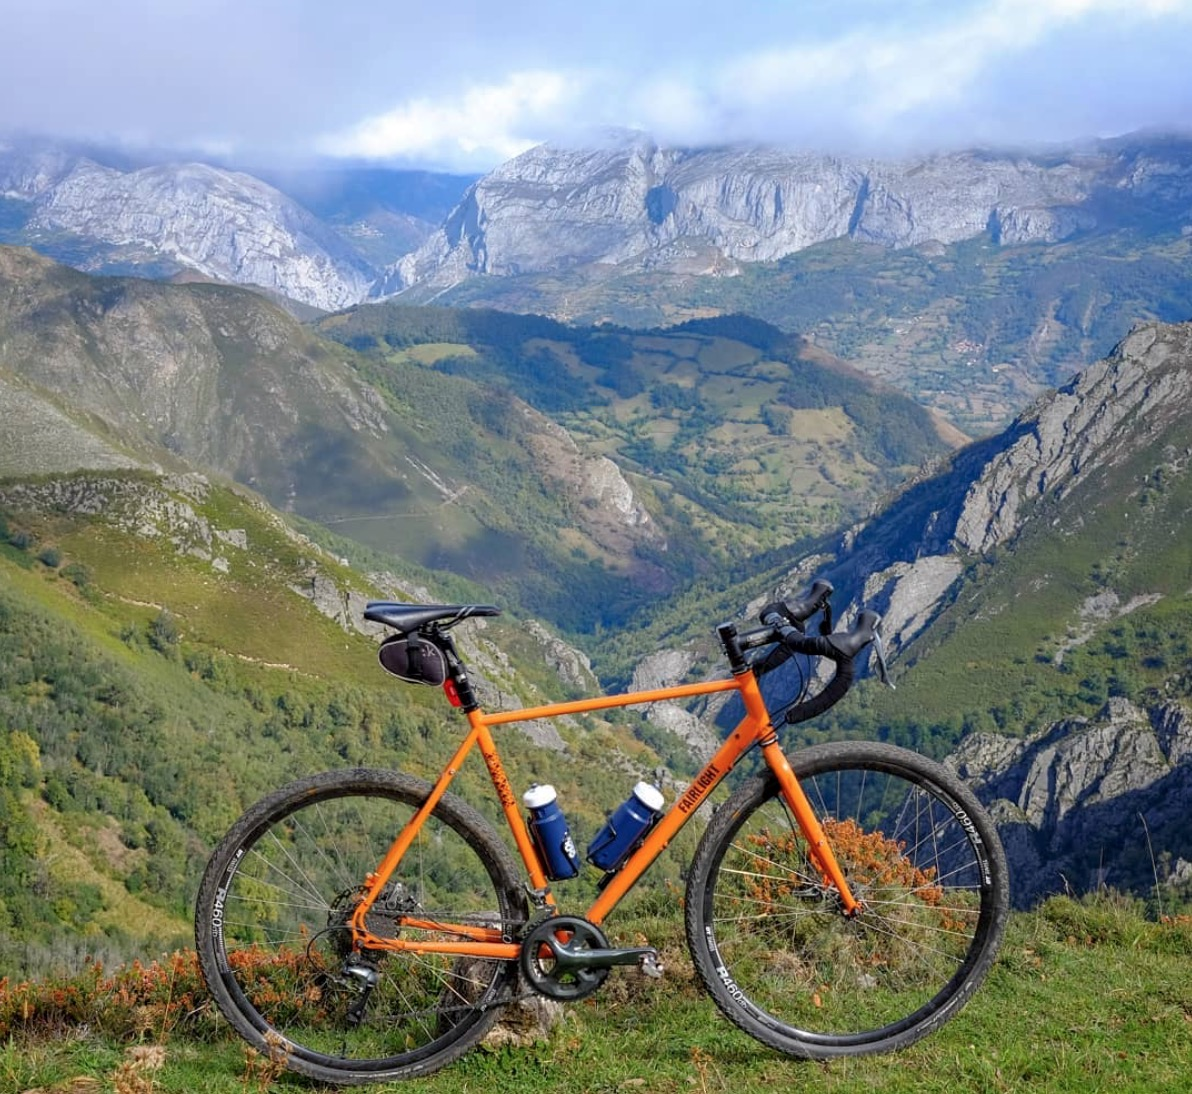 On a grey day like this, it's nice to think of mountains in the sunshine, so here's a big plug for my mate's cycling tour company in NW Spain @farbeyondcycli1. Follow them on Instagram for stunning pictures! https://far-beyond-cycling.com #Asturias #Cycling #MountainBiking #Spainpic.twitter.com/HEI2VXDNqu